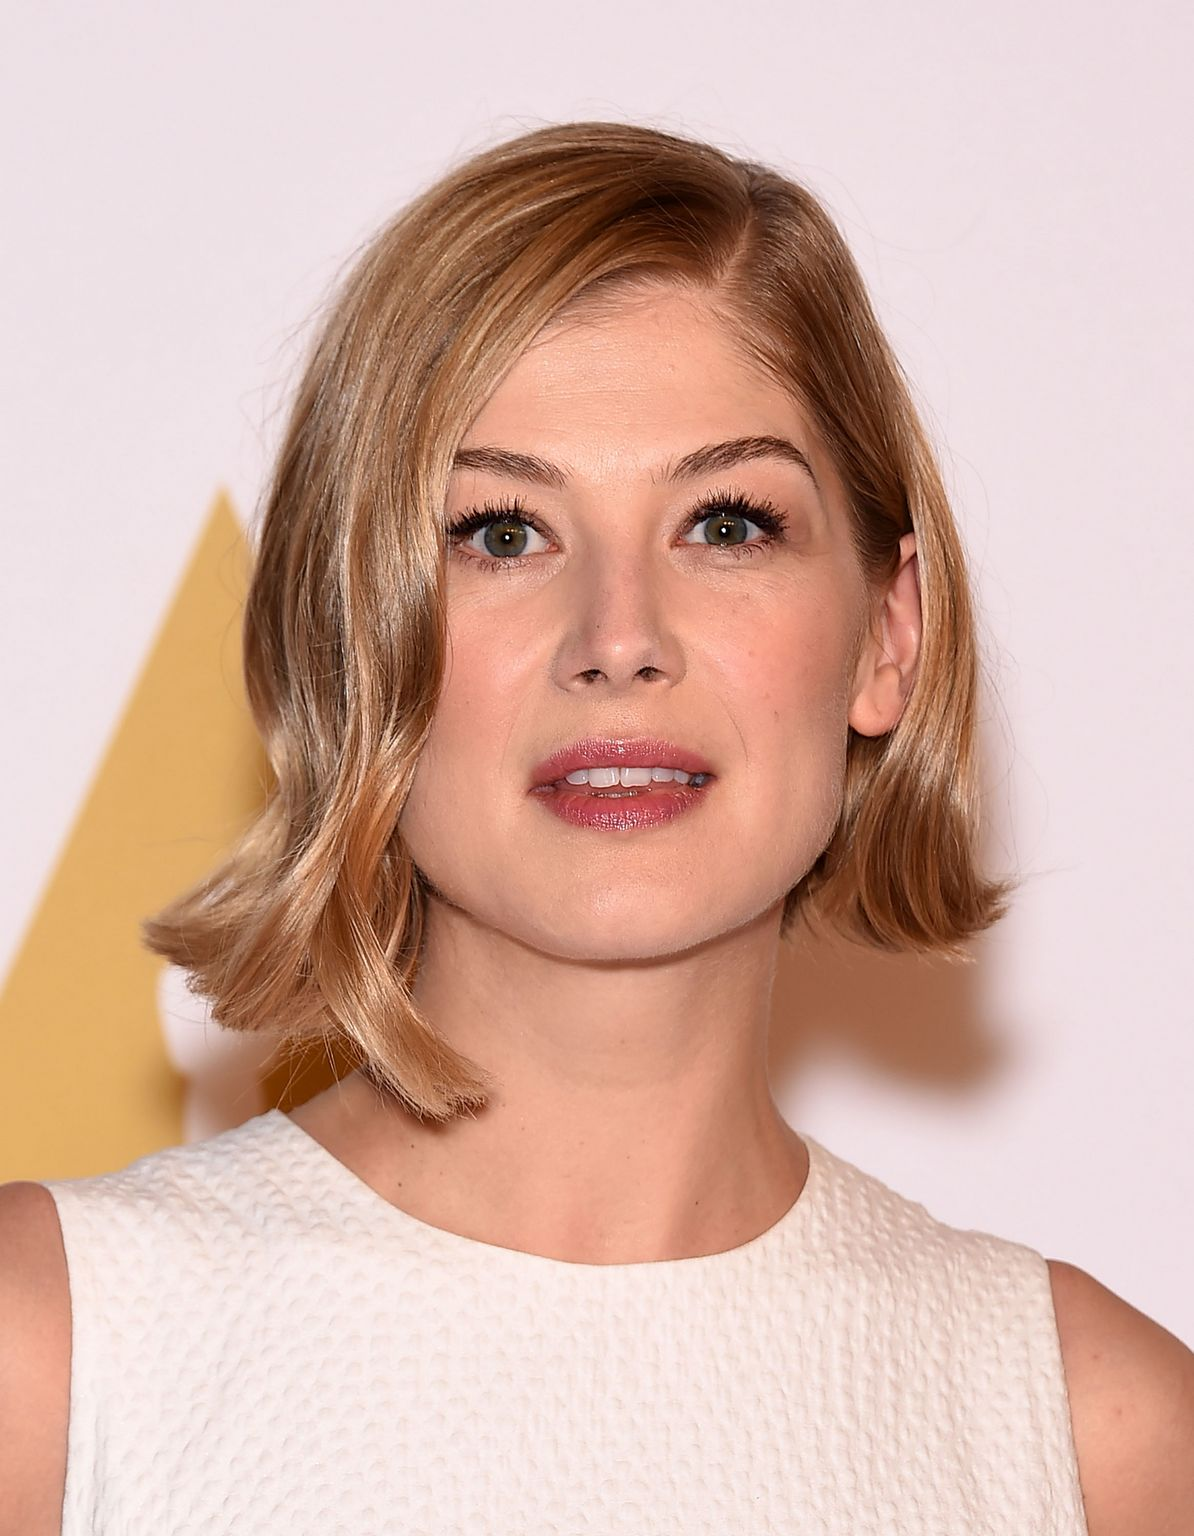 Rosamund Pike photo #6...